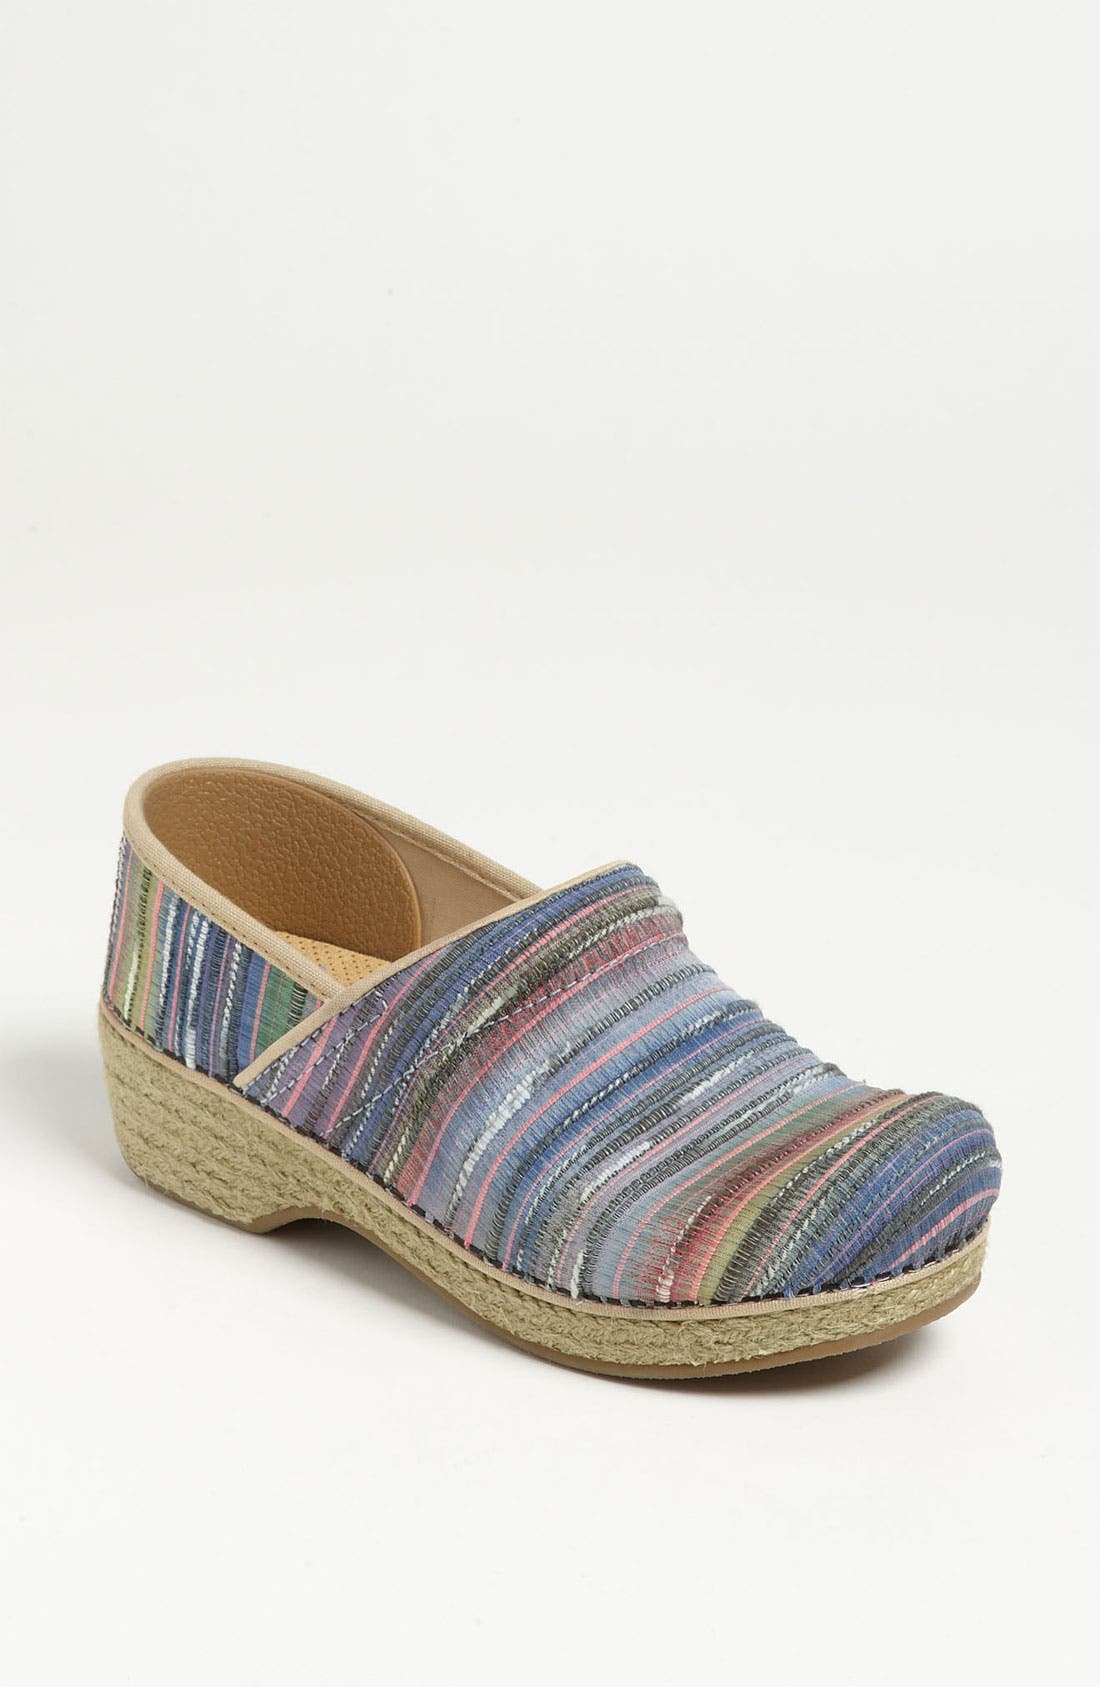 Alternate Image 1 Selected - Dansko 'Jute Professional' Clog